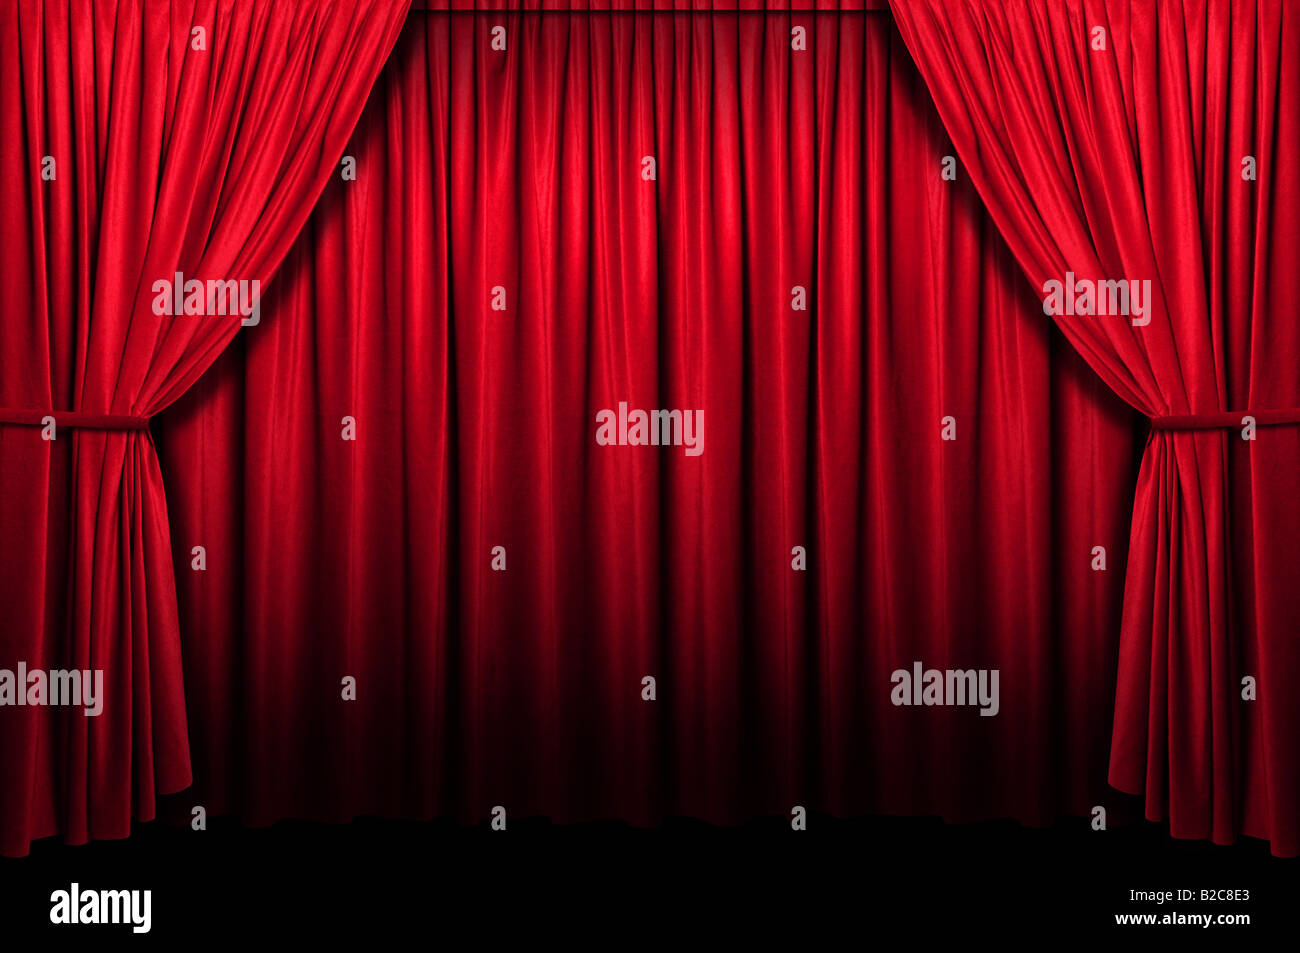 Stage curtain background open stage curtains background red stage - Open Stage Curtains Download